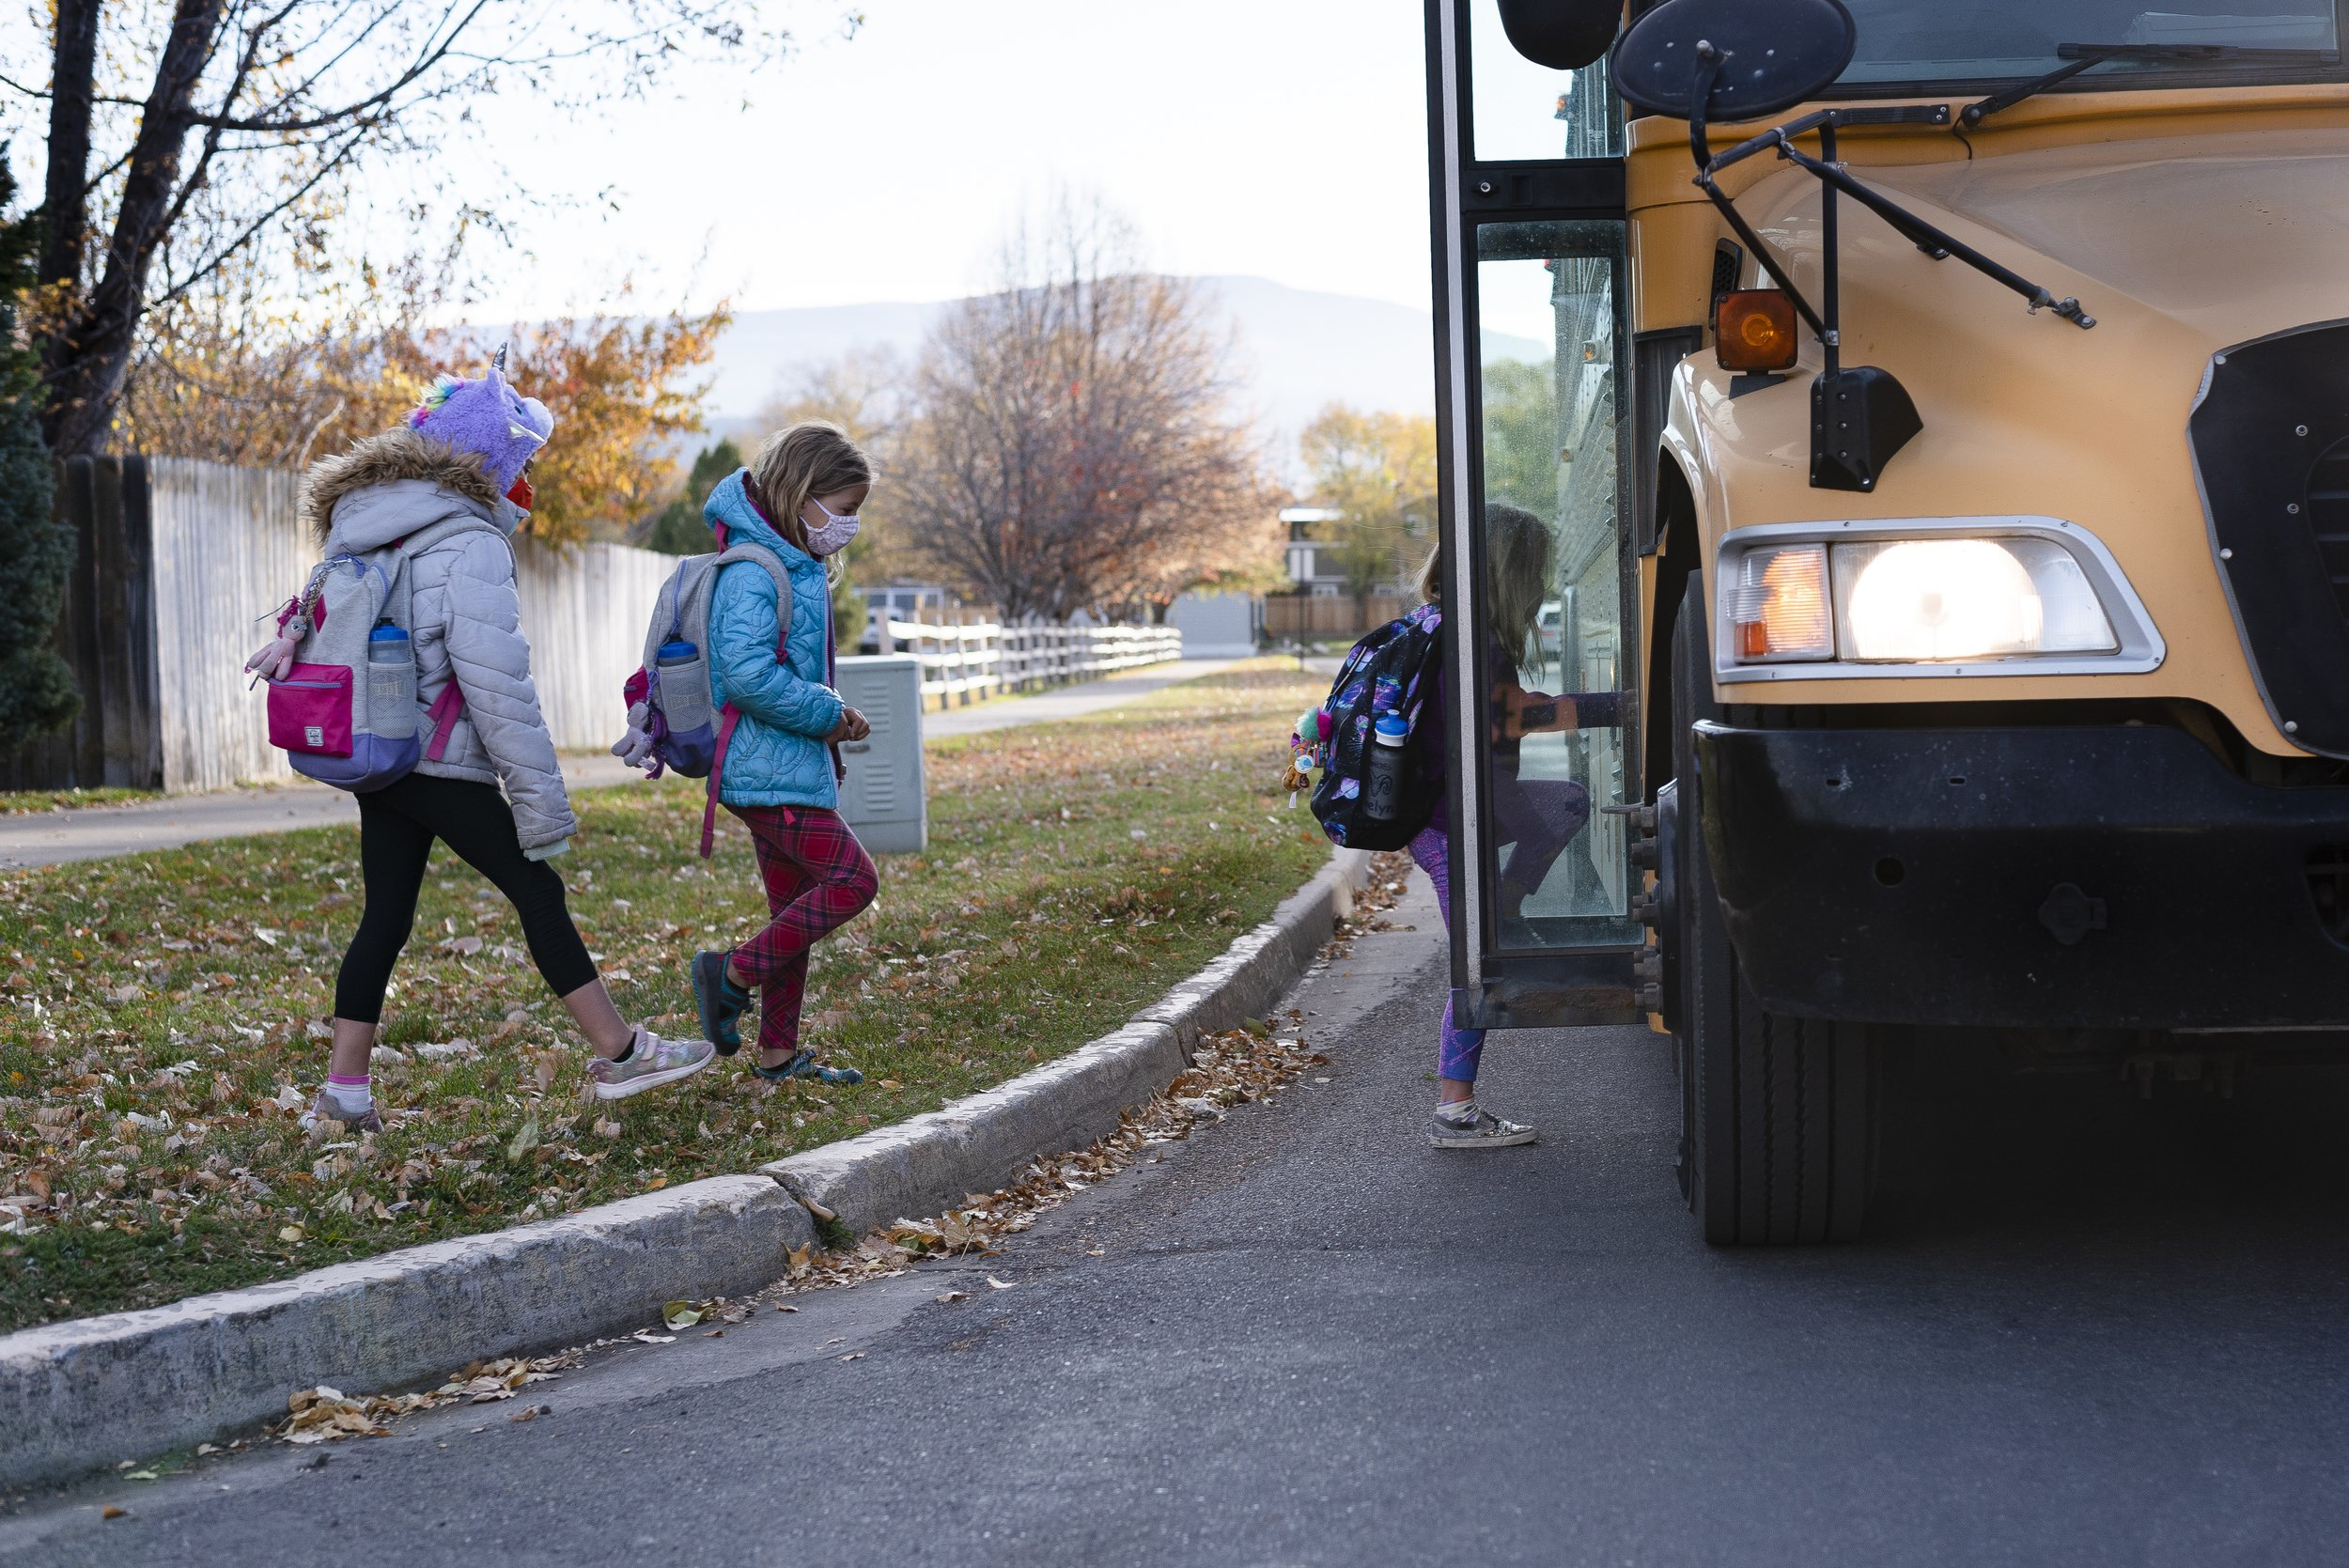 After eight months with no in-person classes at their school, Mary, Ellie, and Evelyn board a school bus. Our pod ended and all six students returned to in-person learning at Crystal River Elementary School as soon as it resumed on October 18th.